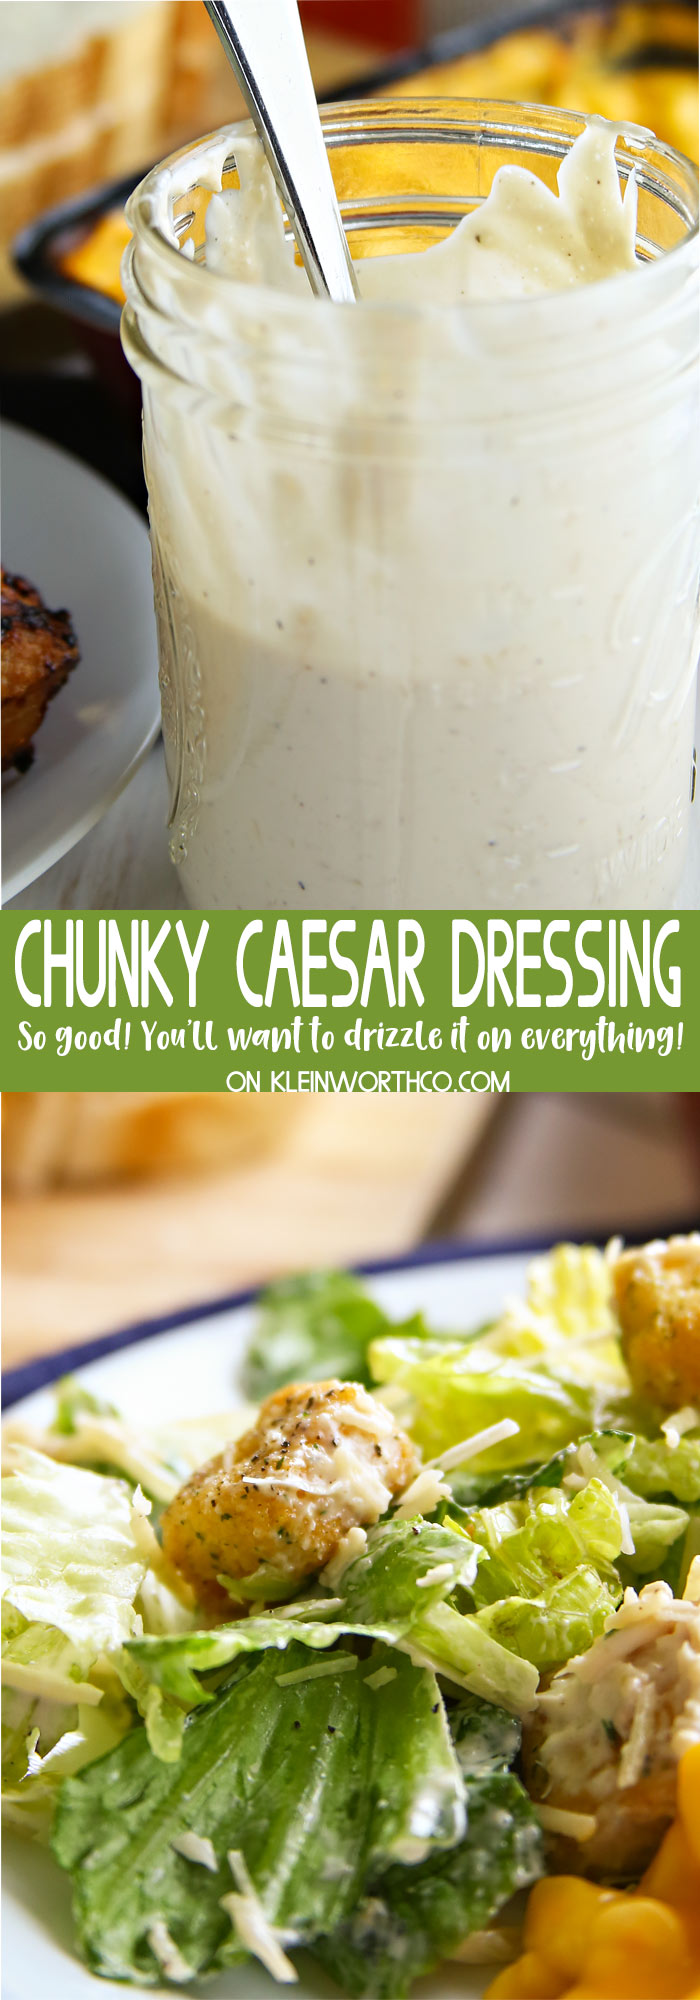 Chunky Caesar Dressing Recipe